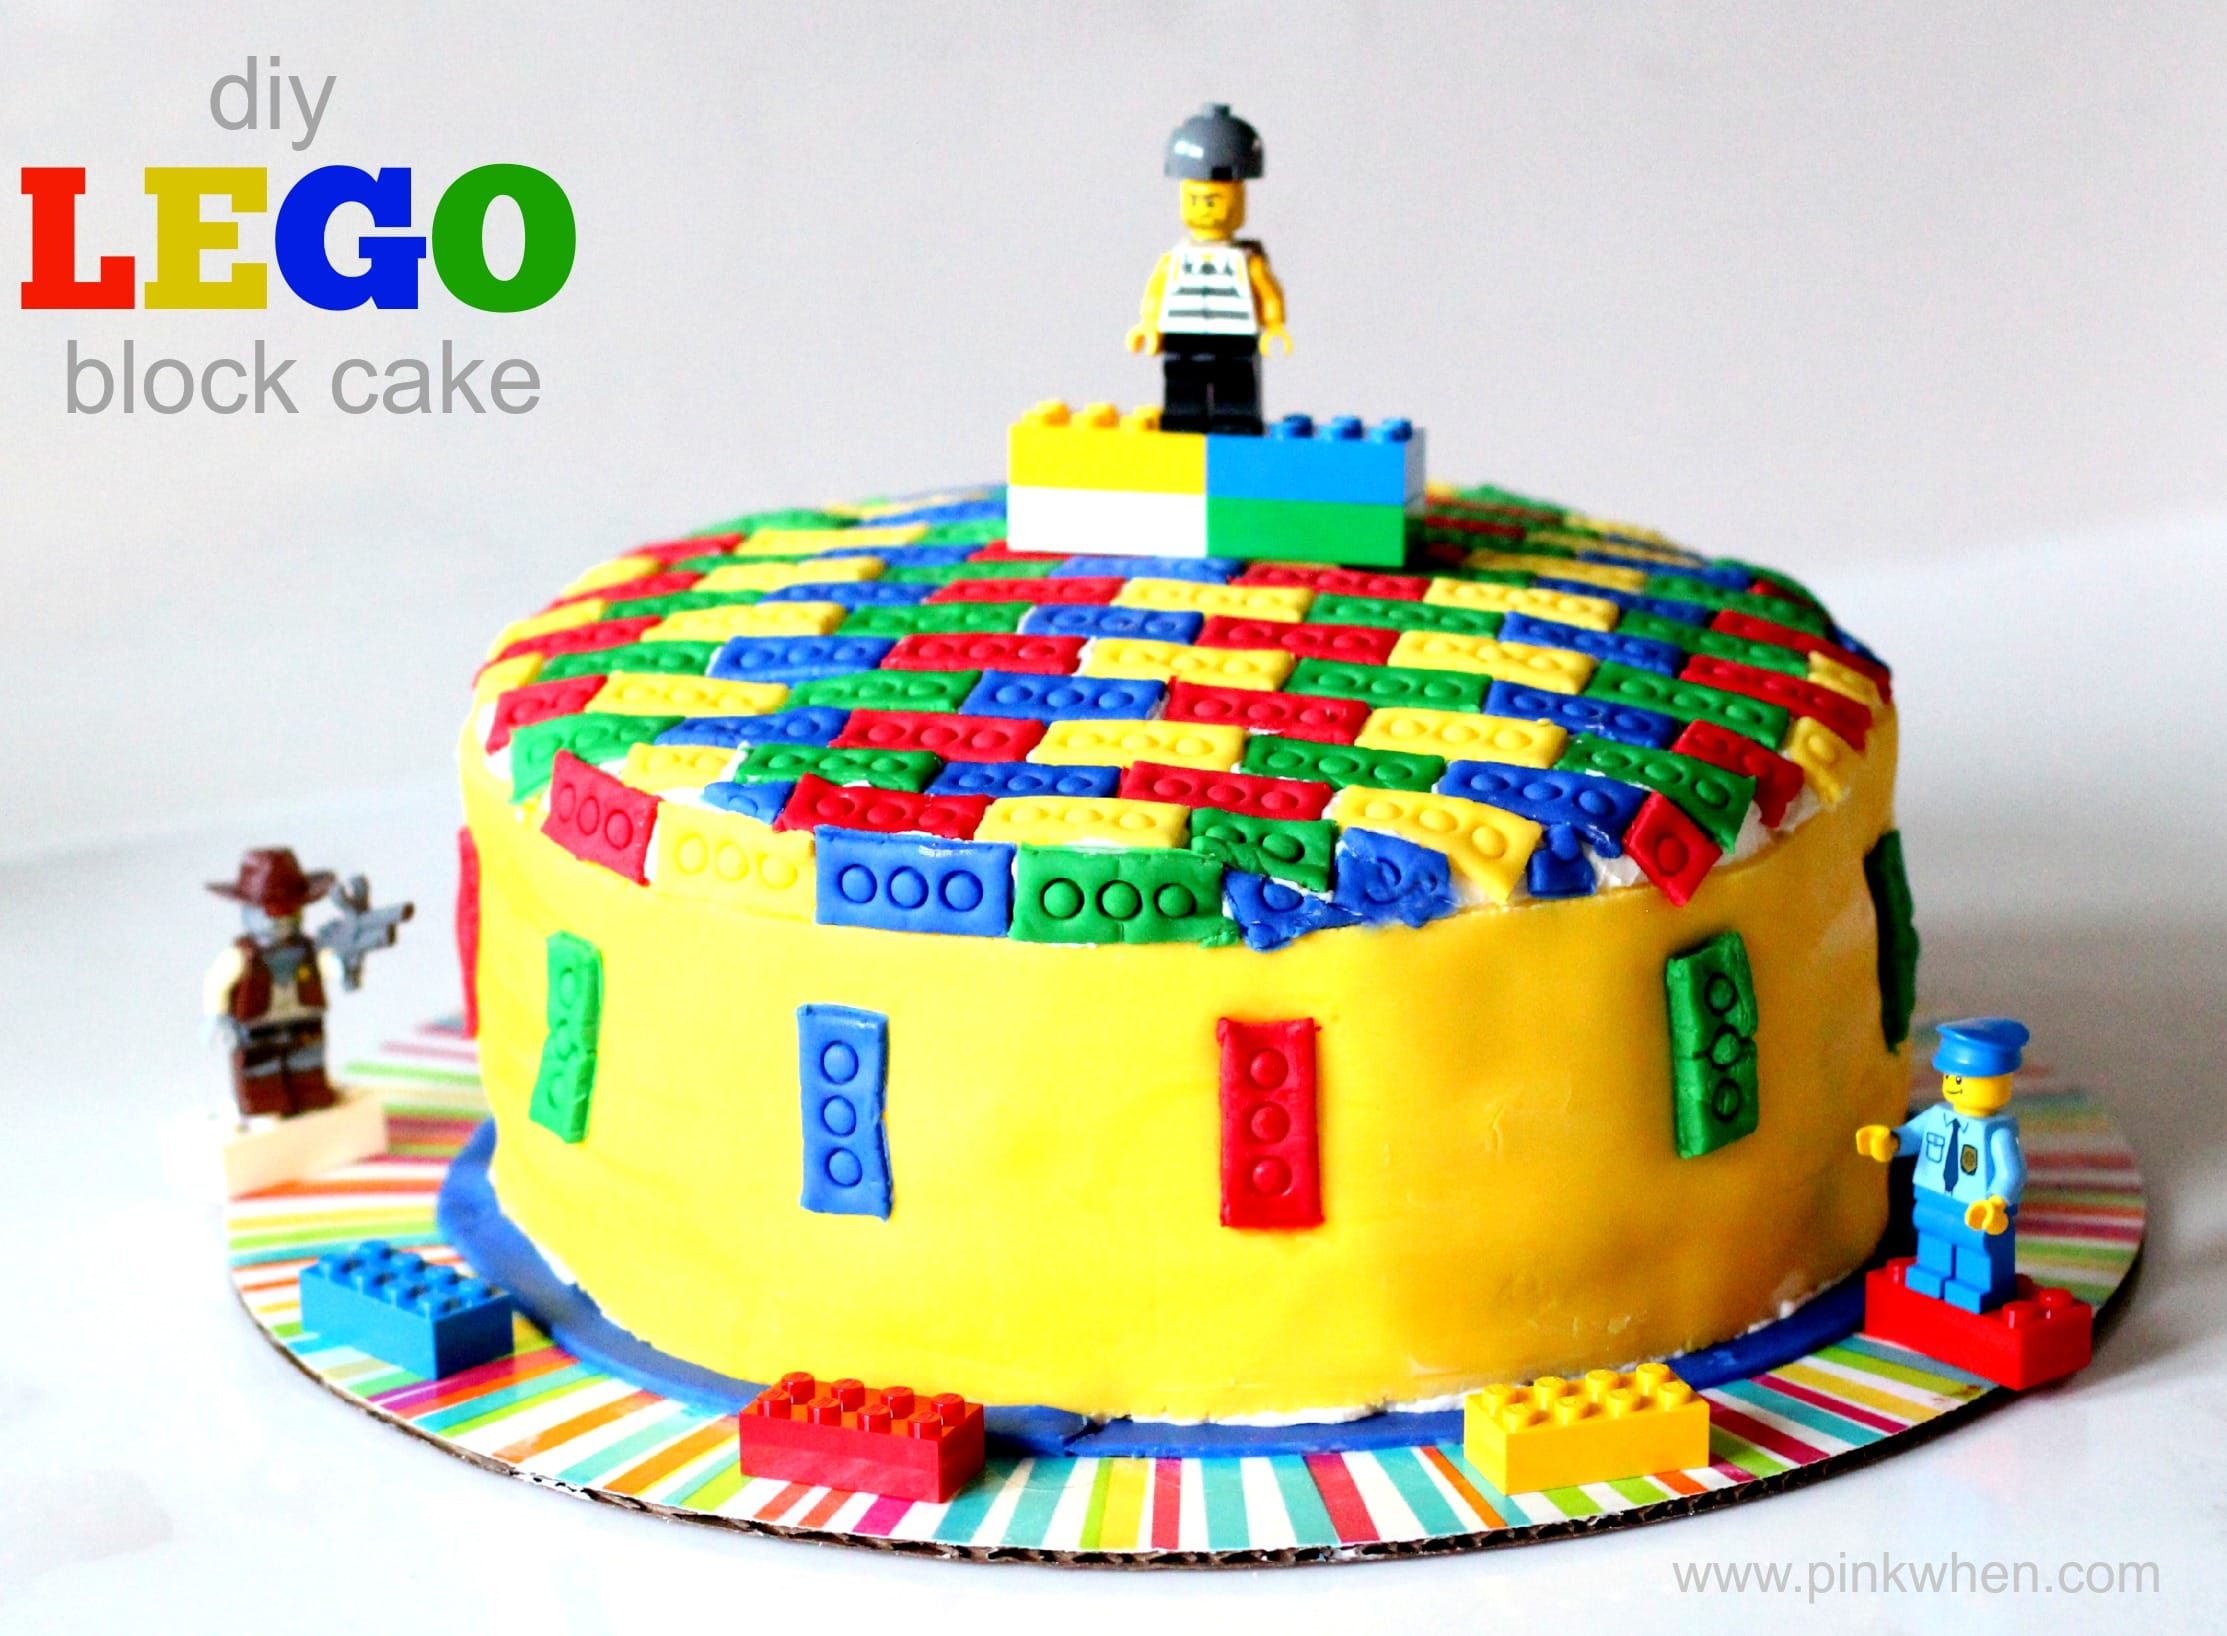 Lego Blocks Cake Design : DIY Lego Cake - Page 2 of 2 - PinkWhen